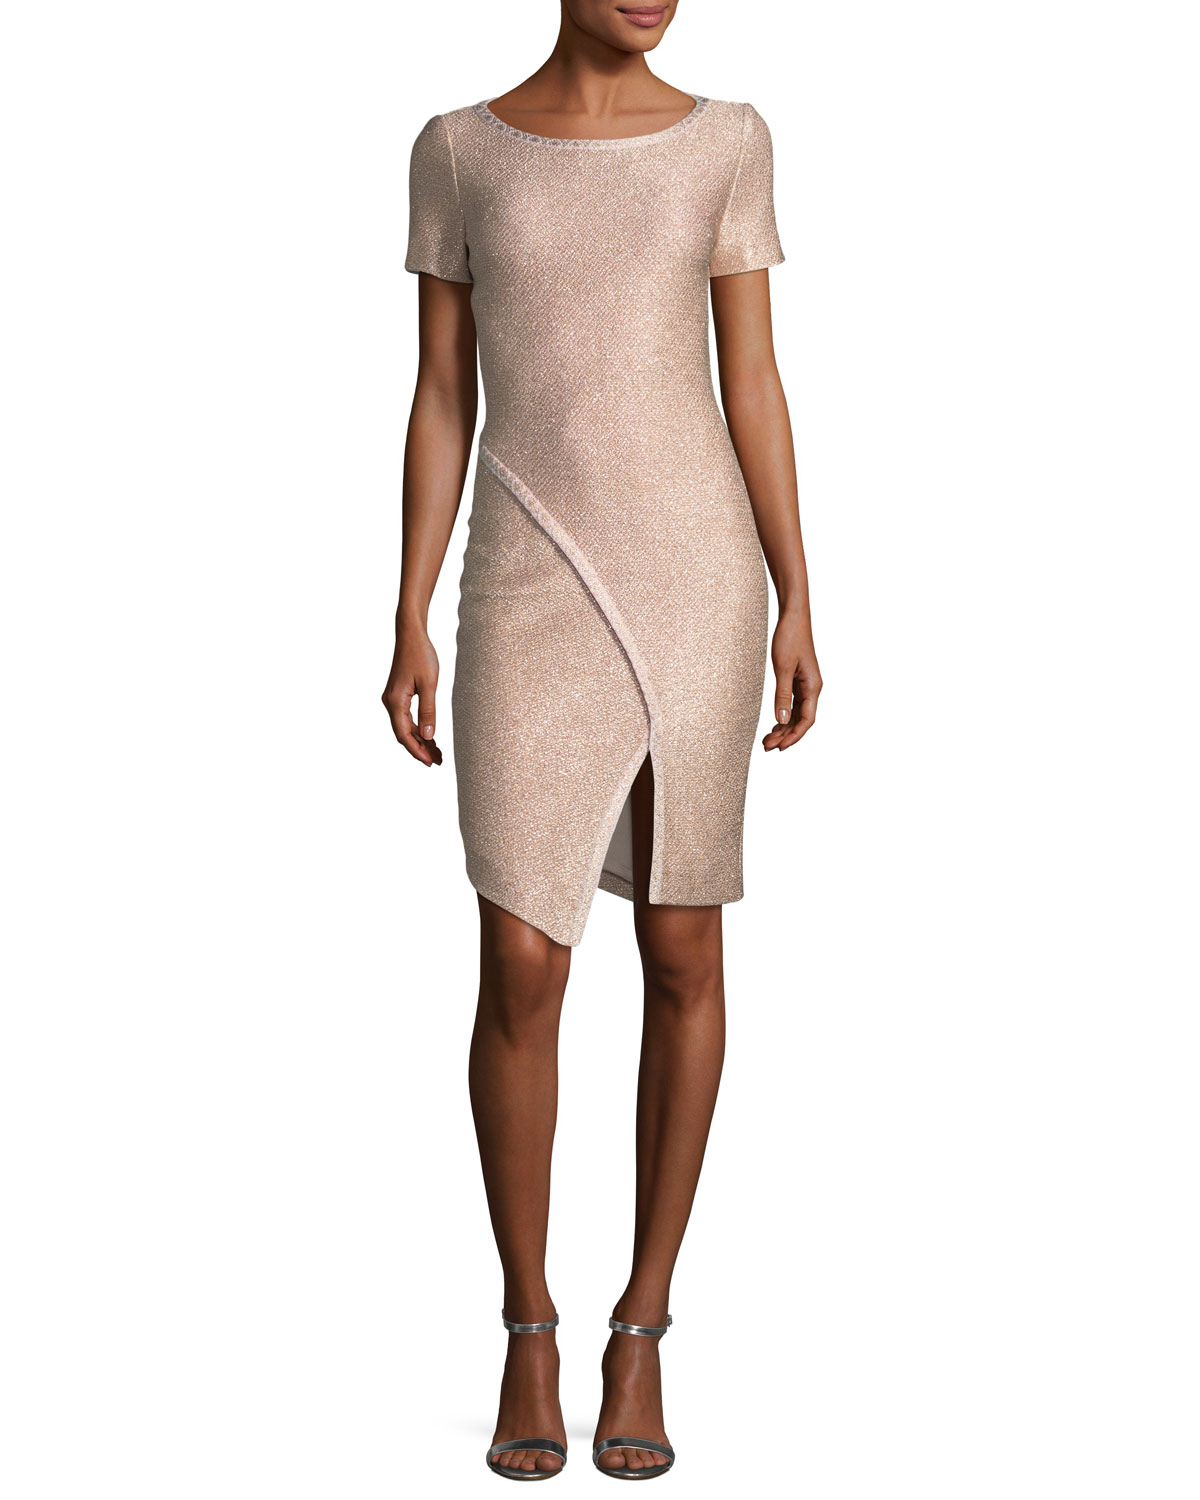 Frosted Metallic Knit Cocktail Dress